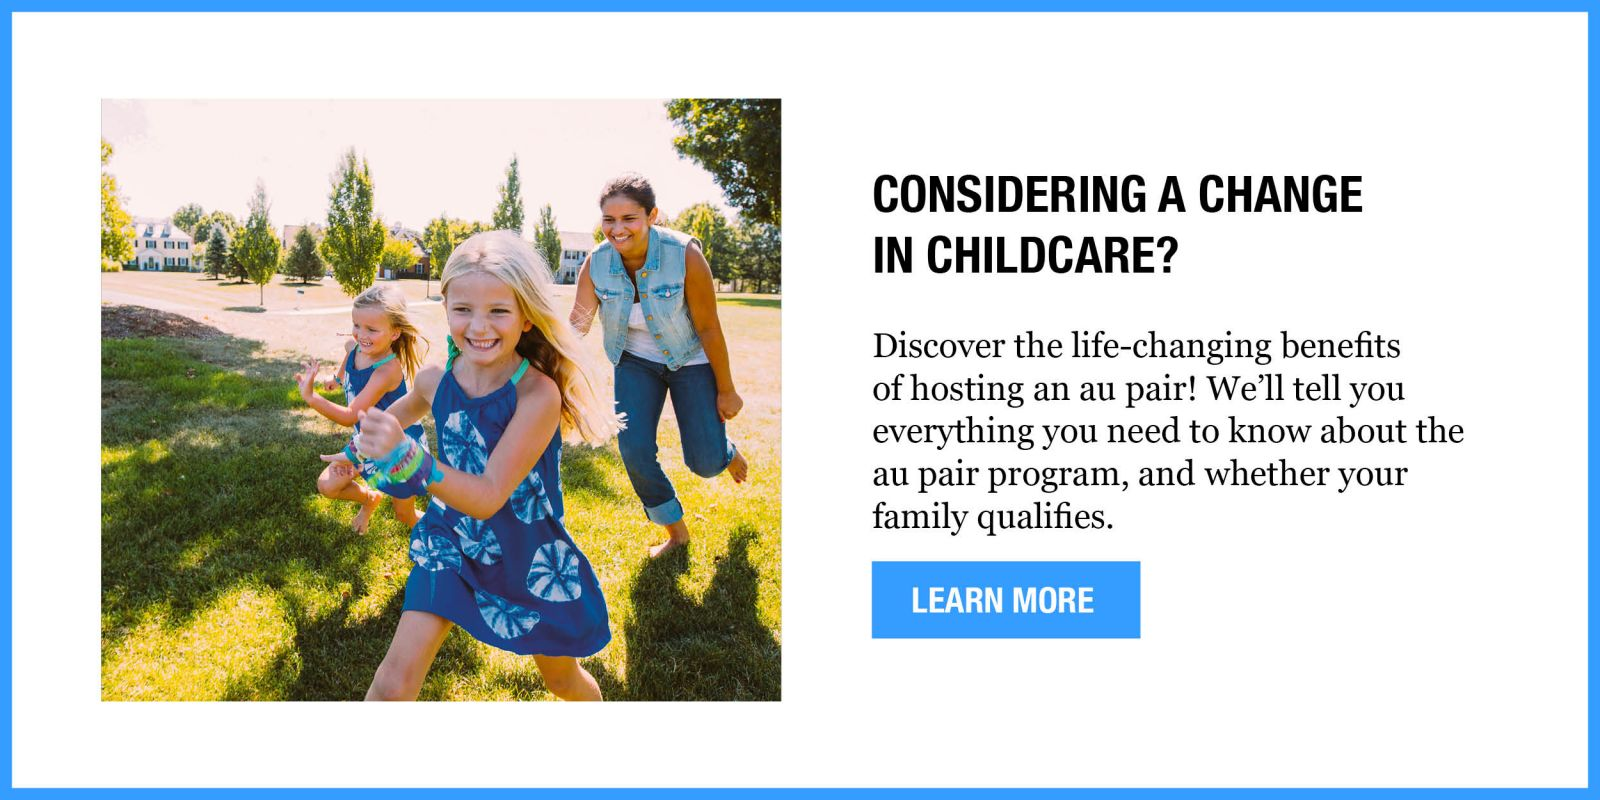 Considering a change in childcare?